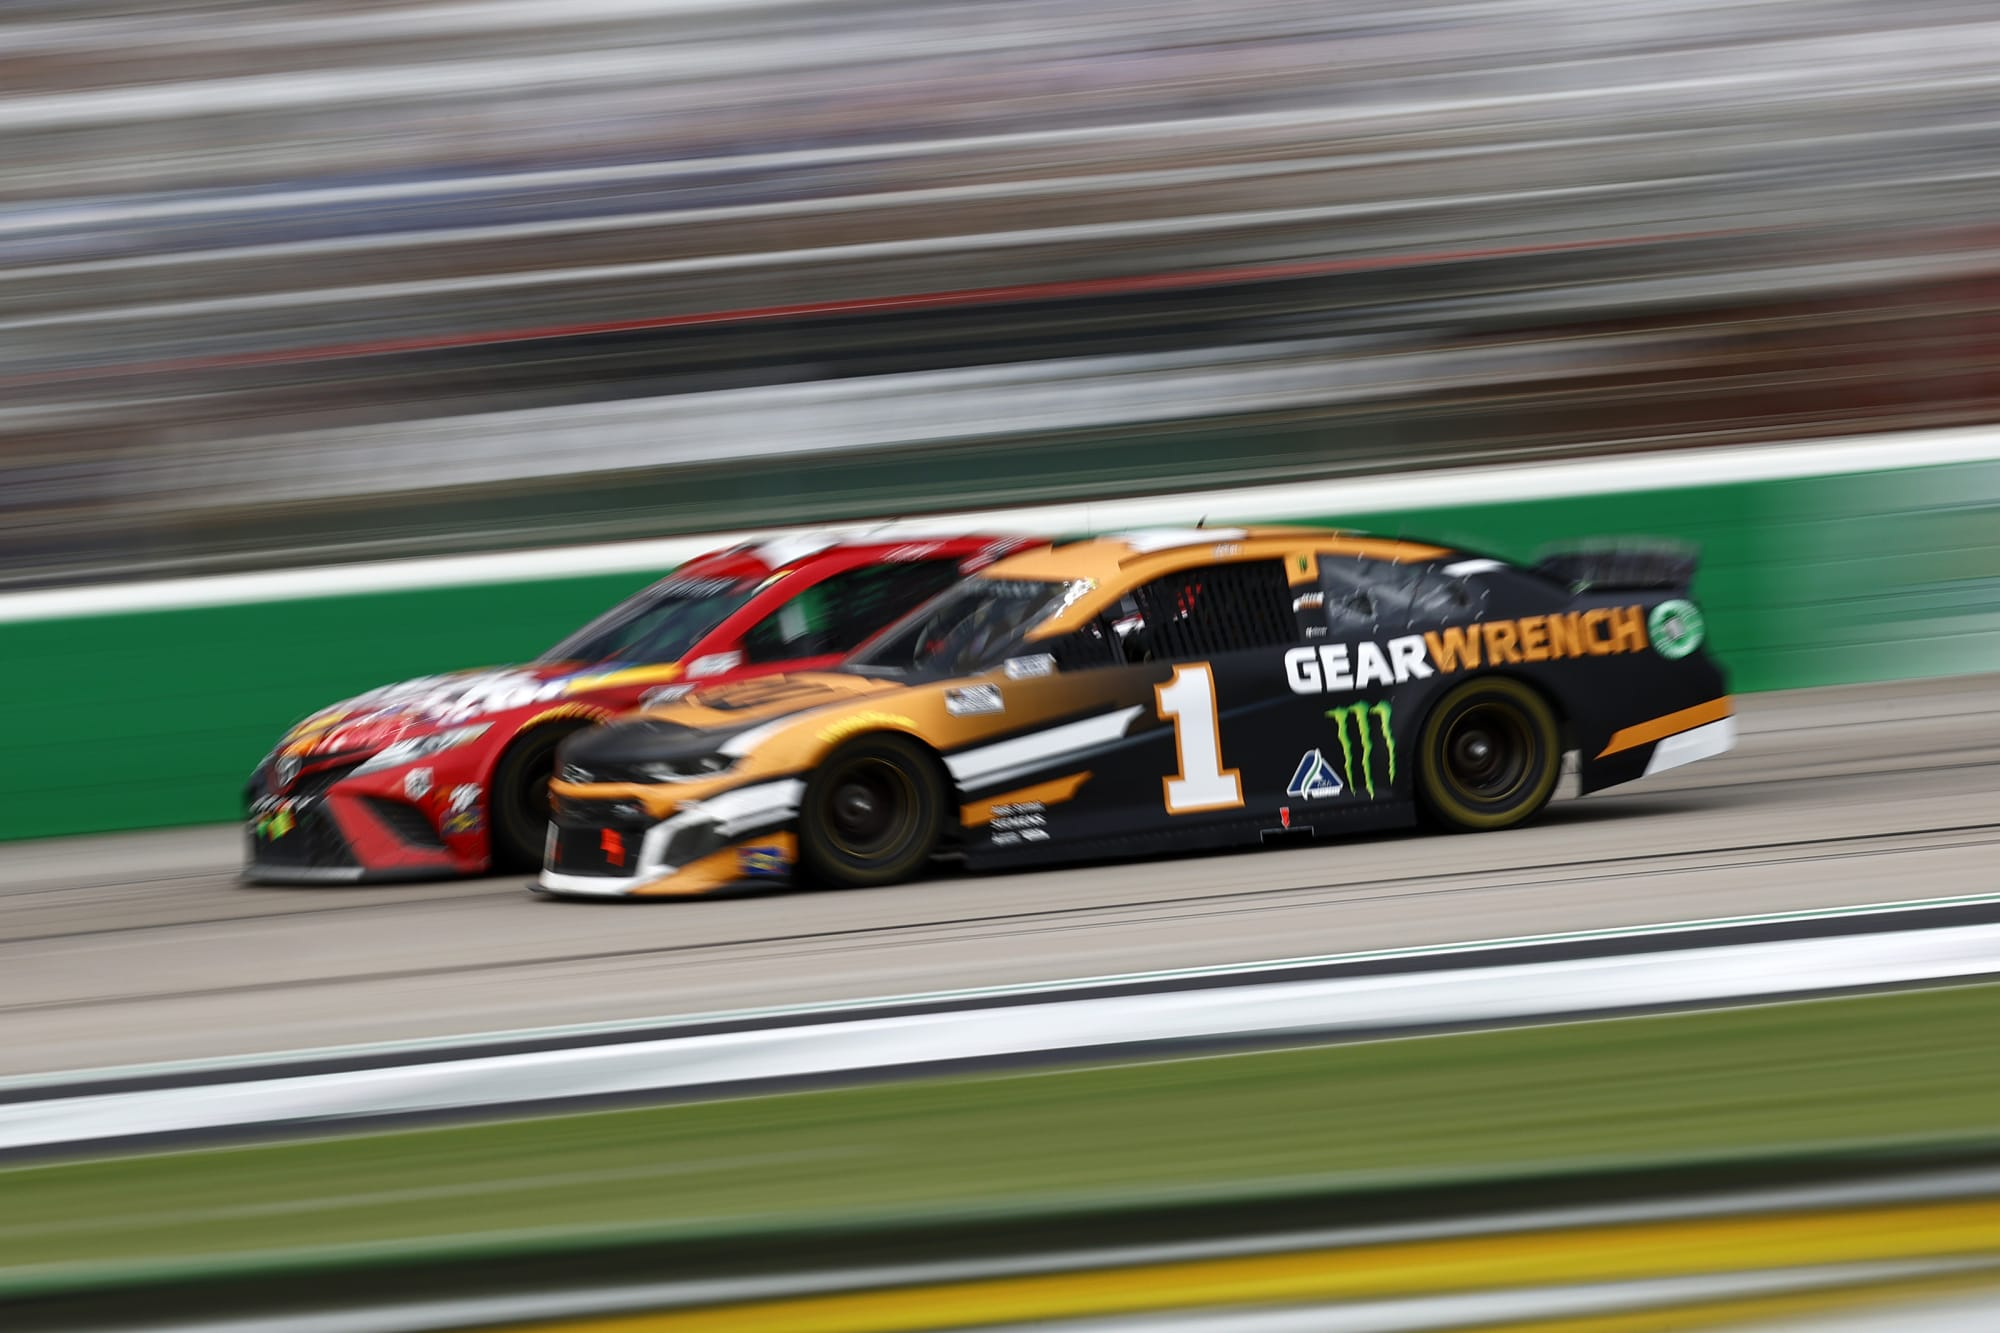 NASCAR: Are team orders already becoming a reality? - Beyond the Flag